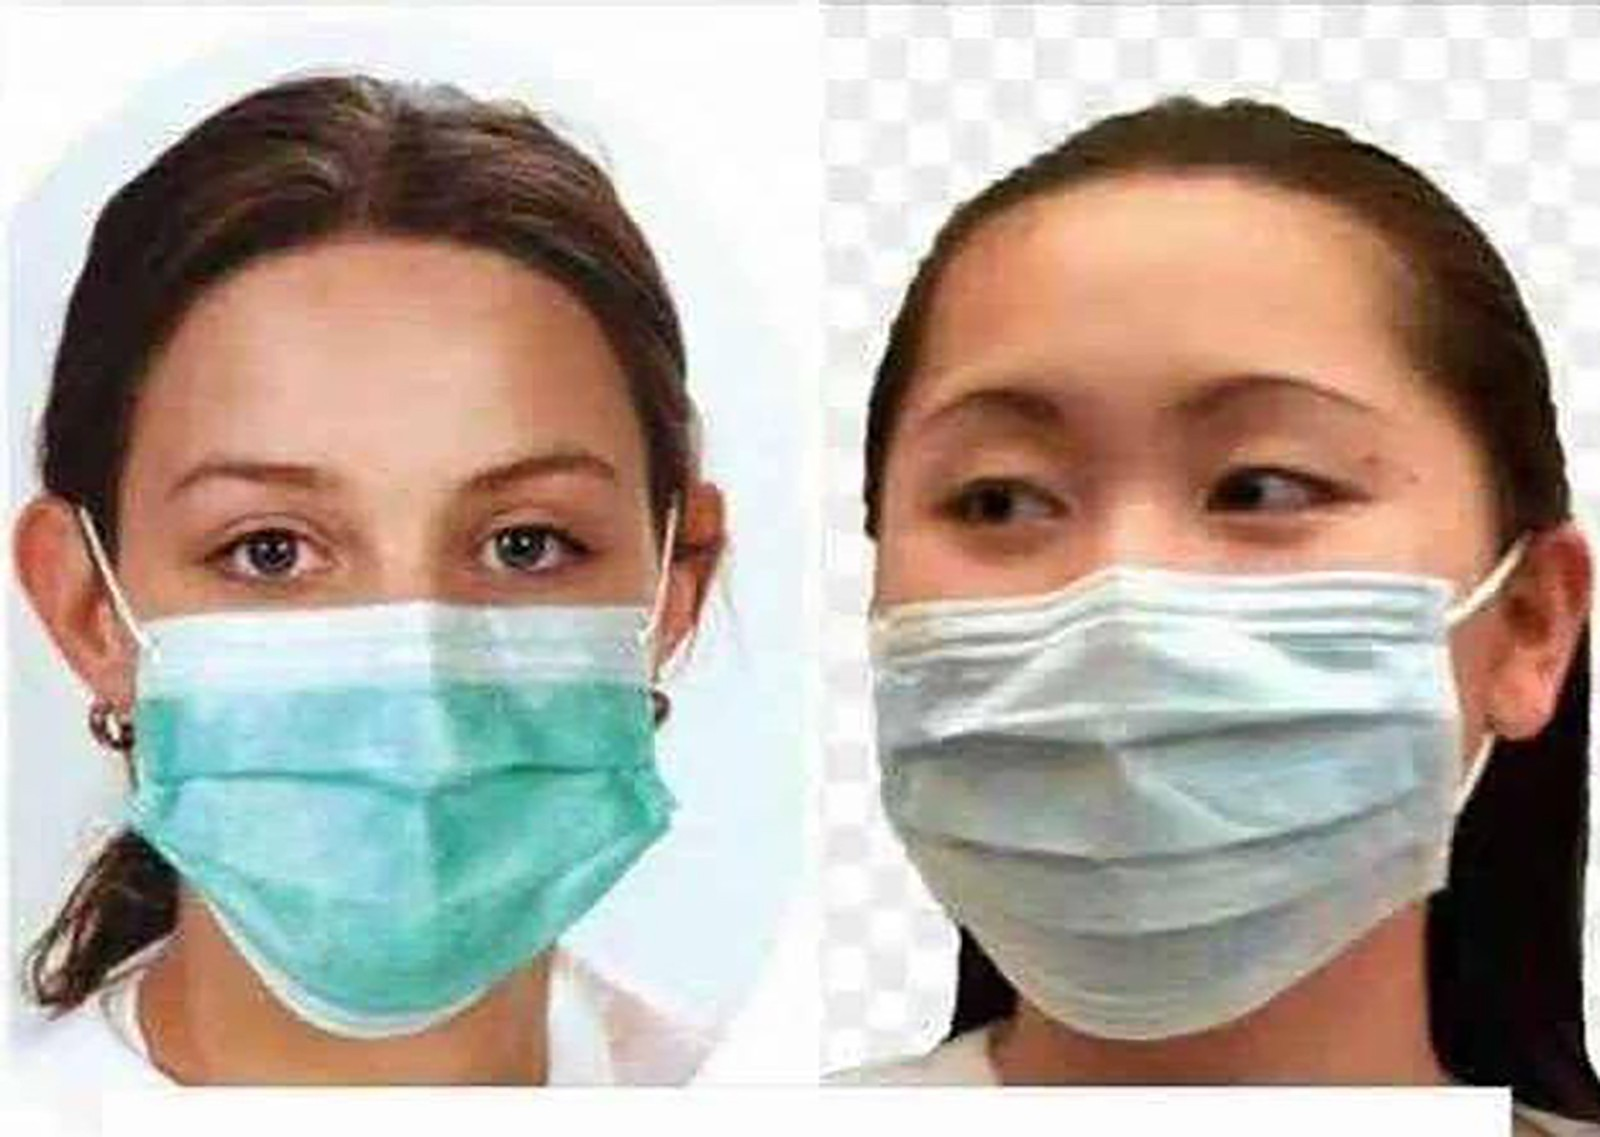 Wear Says China Way Mask To One Correct Only Coronavirus